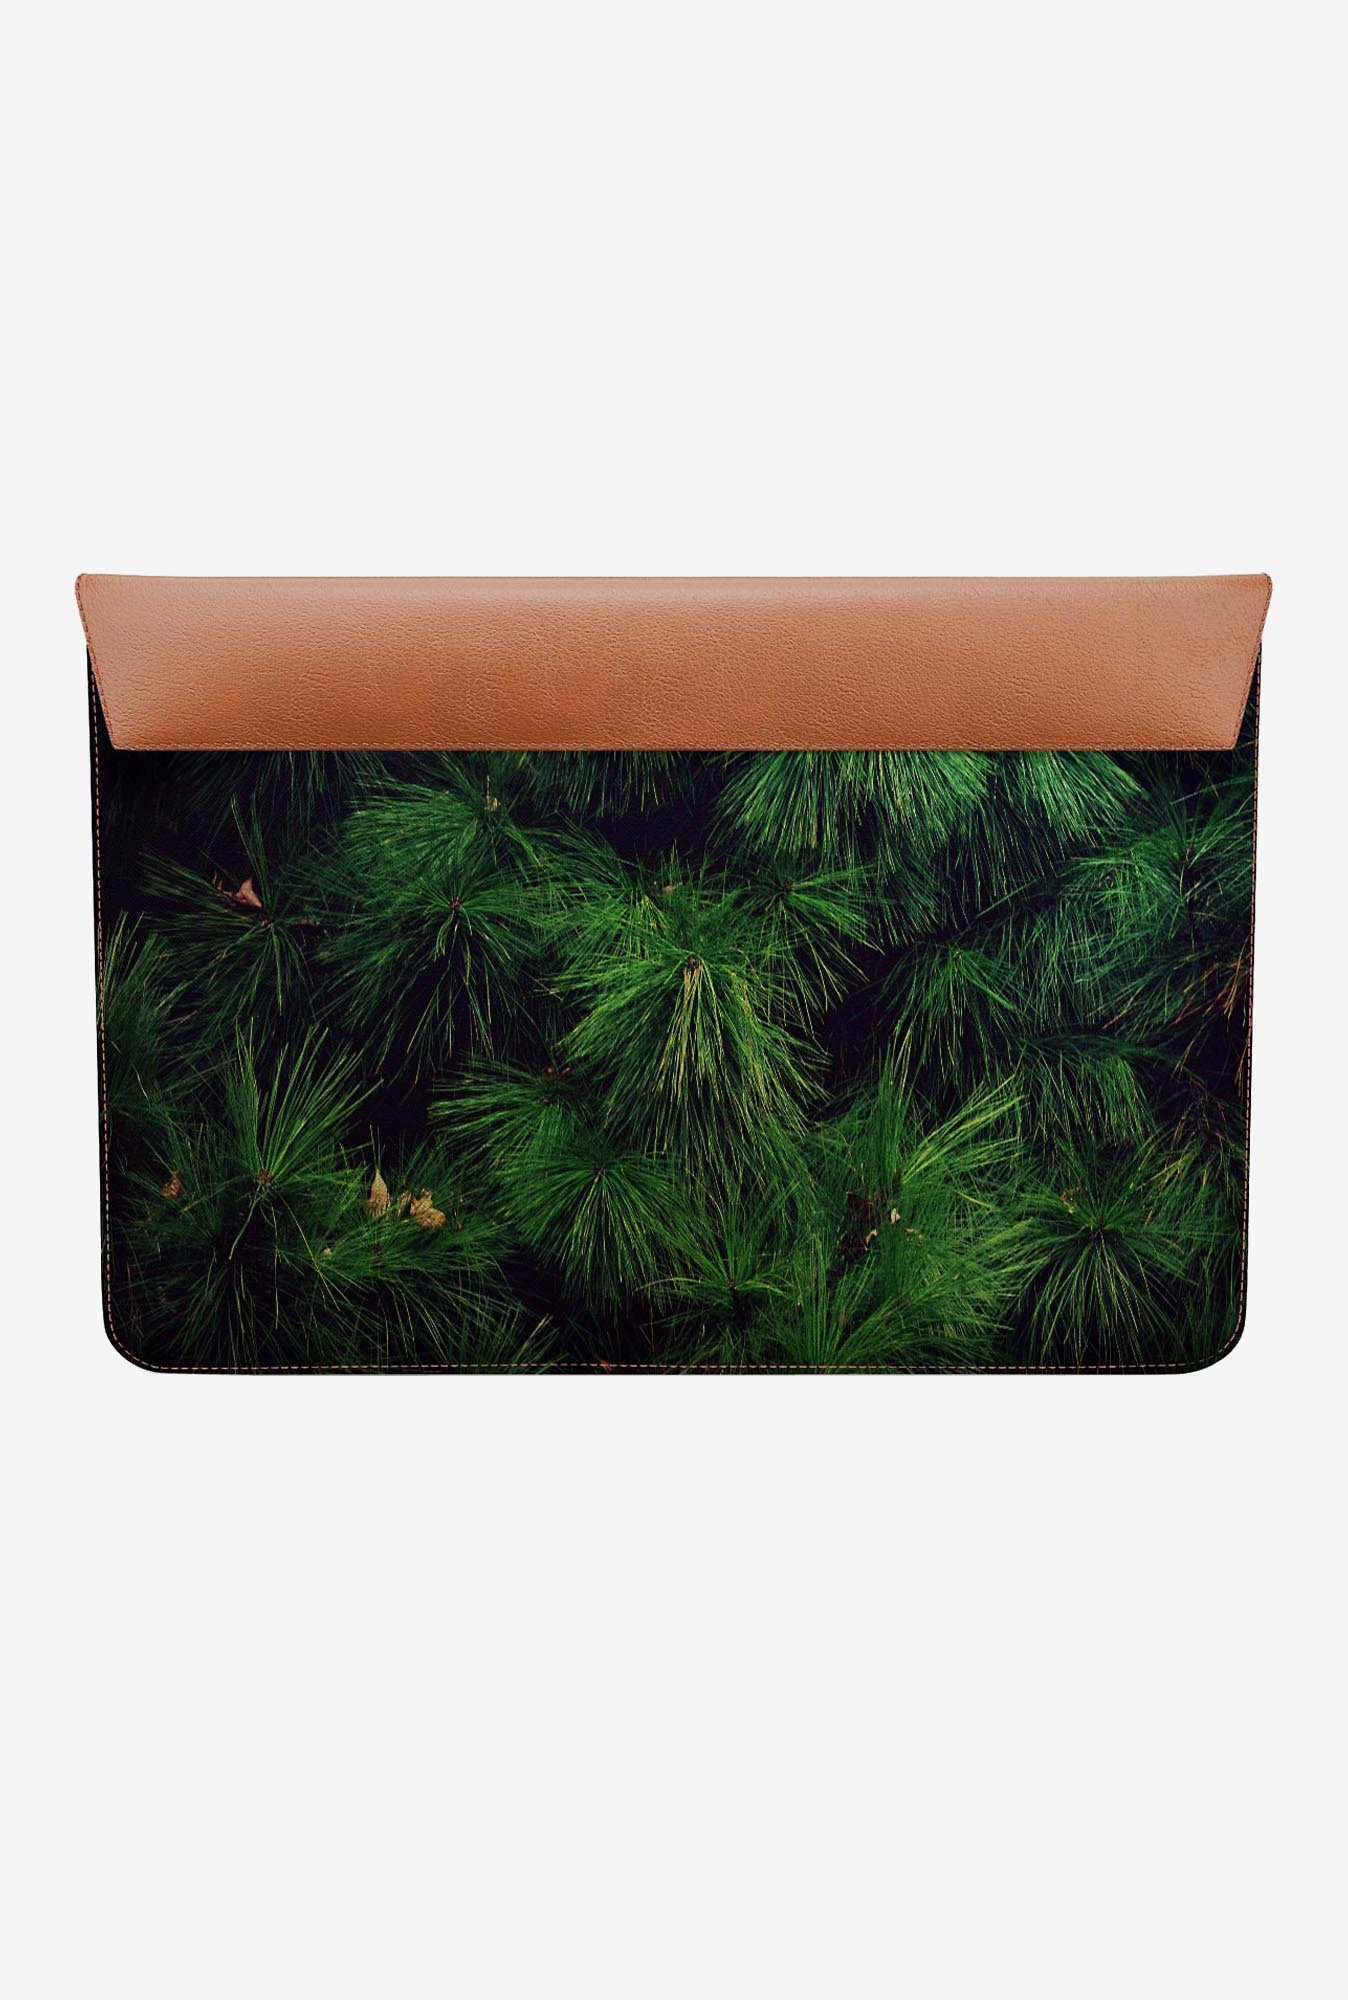 DailyObjects Strong Wind MacBook 12 Envelope Sleeve